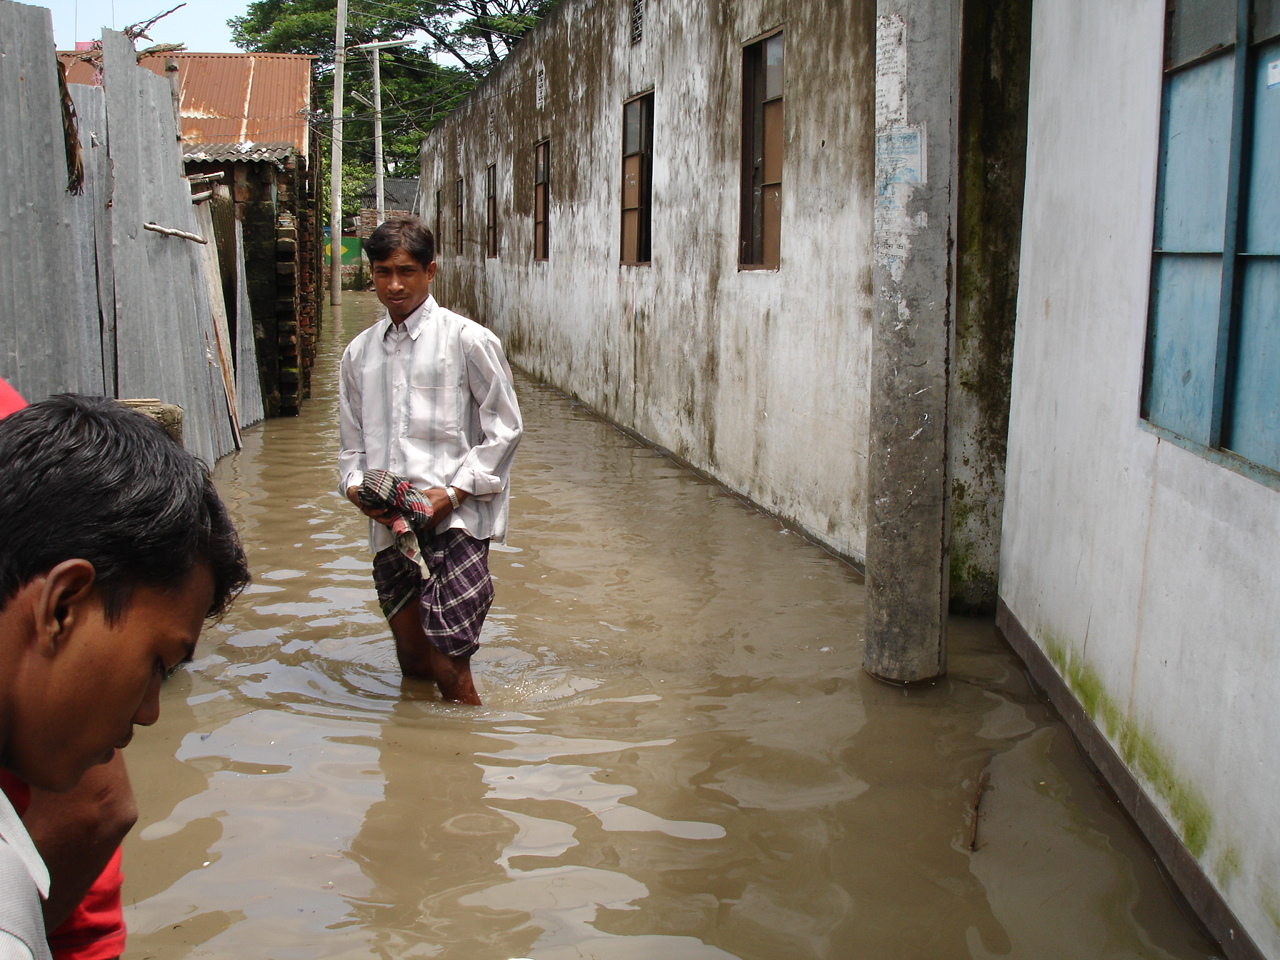 Stagnant pools of water provide fertile ground for a host of water-borne diseases. Each year approximately one-third of the country floods over during the annual monsoon rains